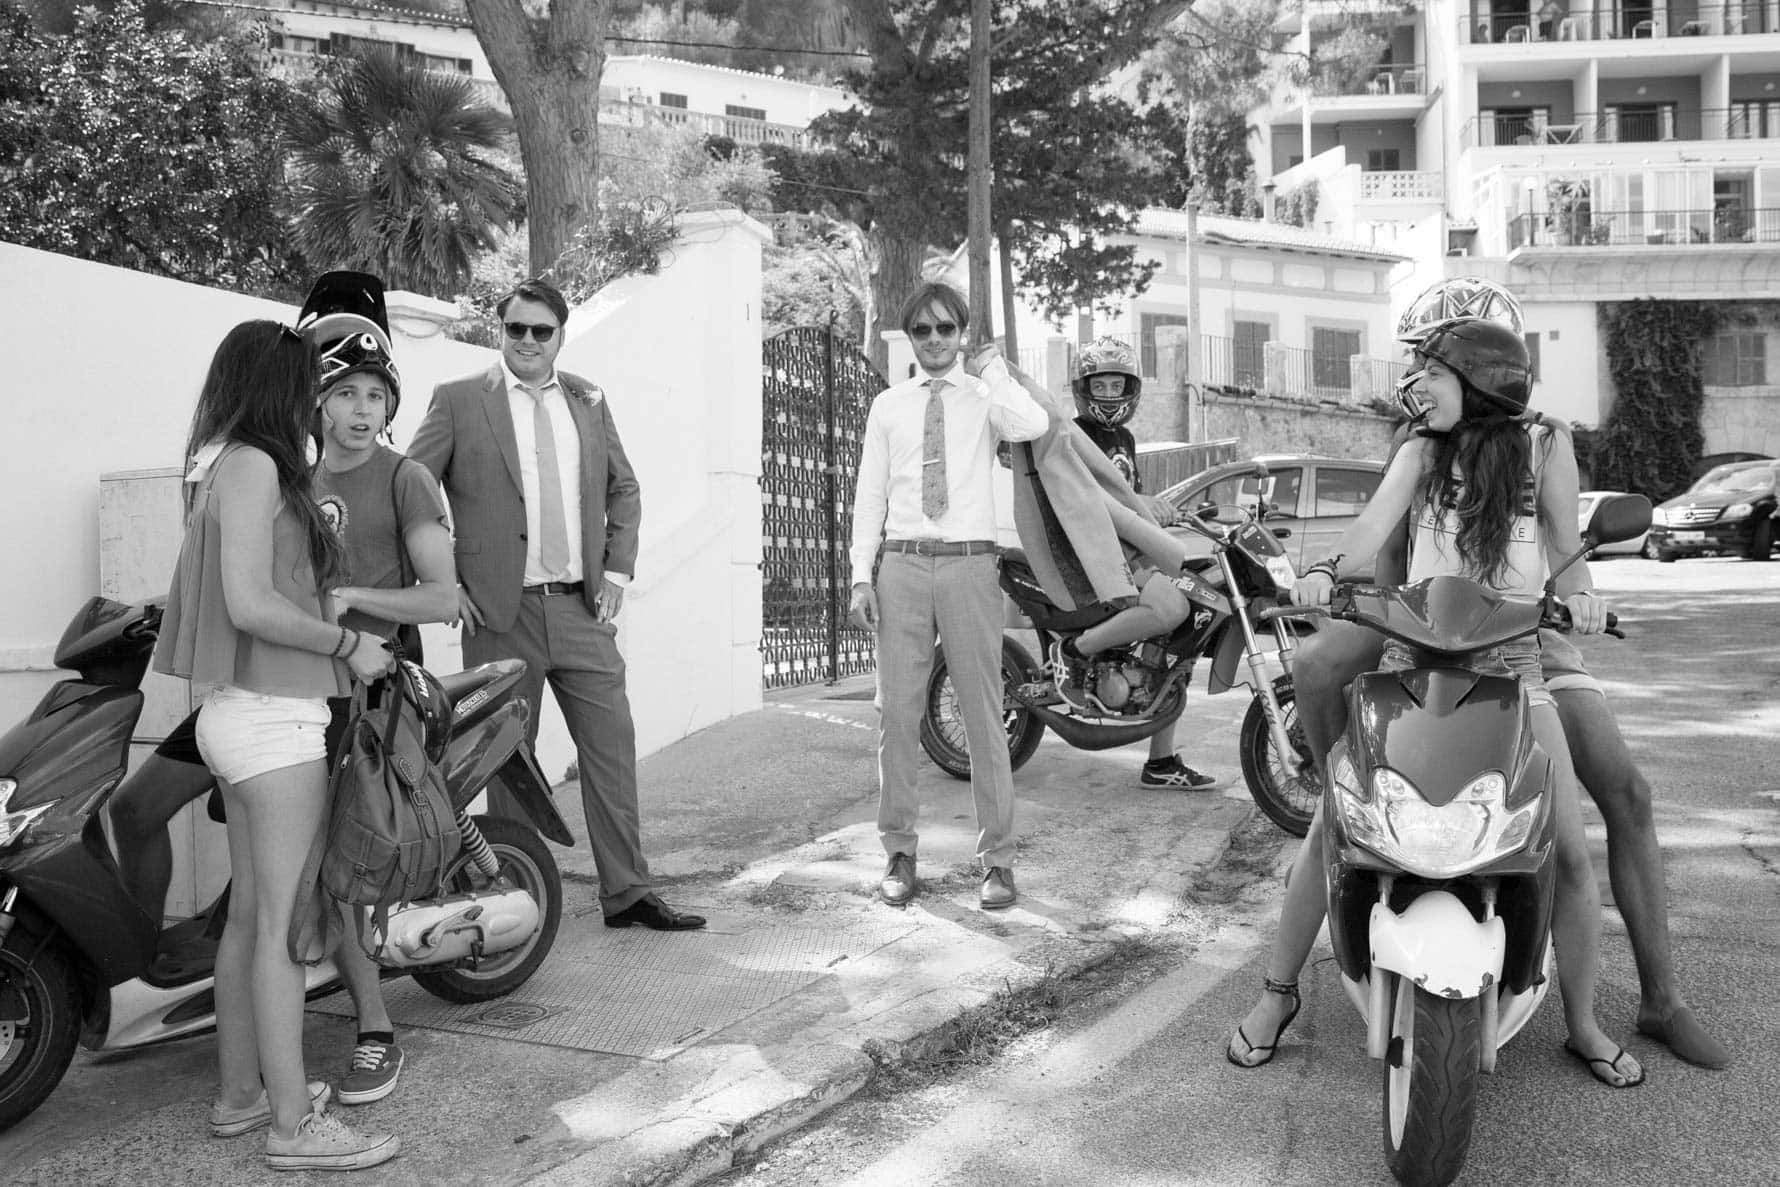 """With the scooters"" by Mallorca wedding photographer in Port de Soller"